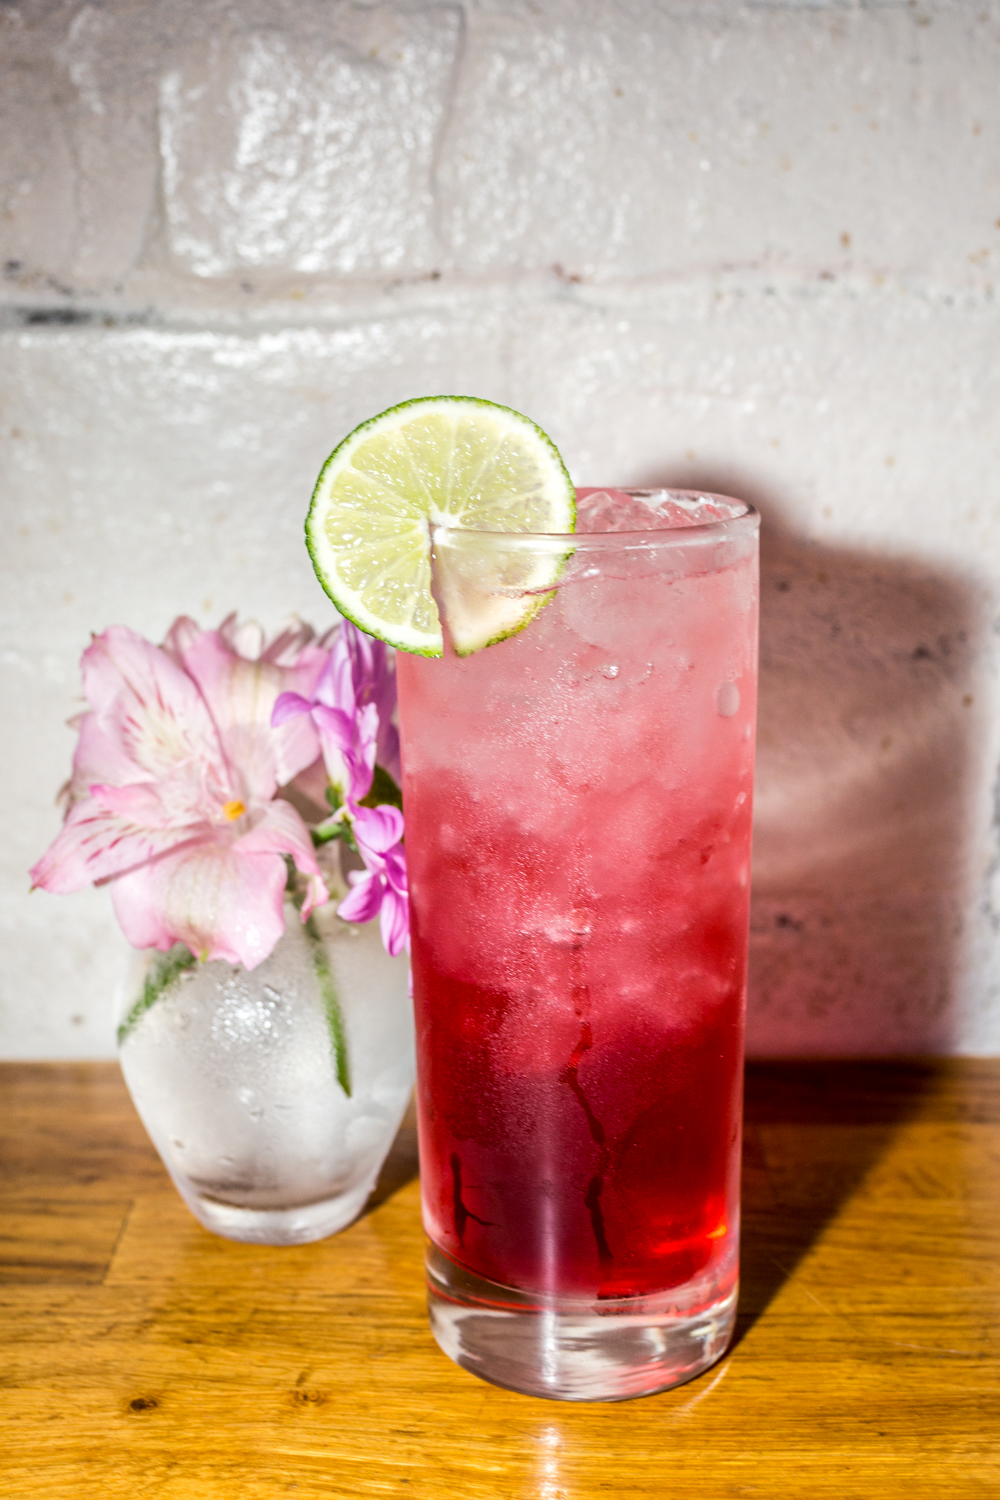 Strawberry ginger hibiscus punch with tequila / Image: Catherine Viox // Published: 9.30.19